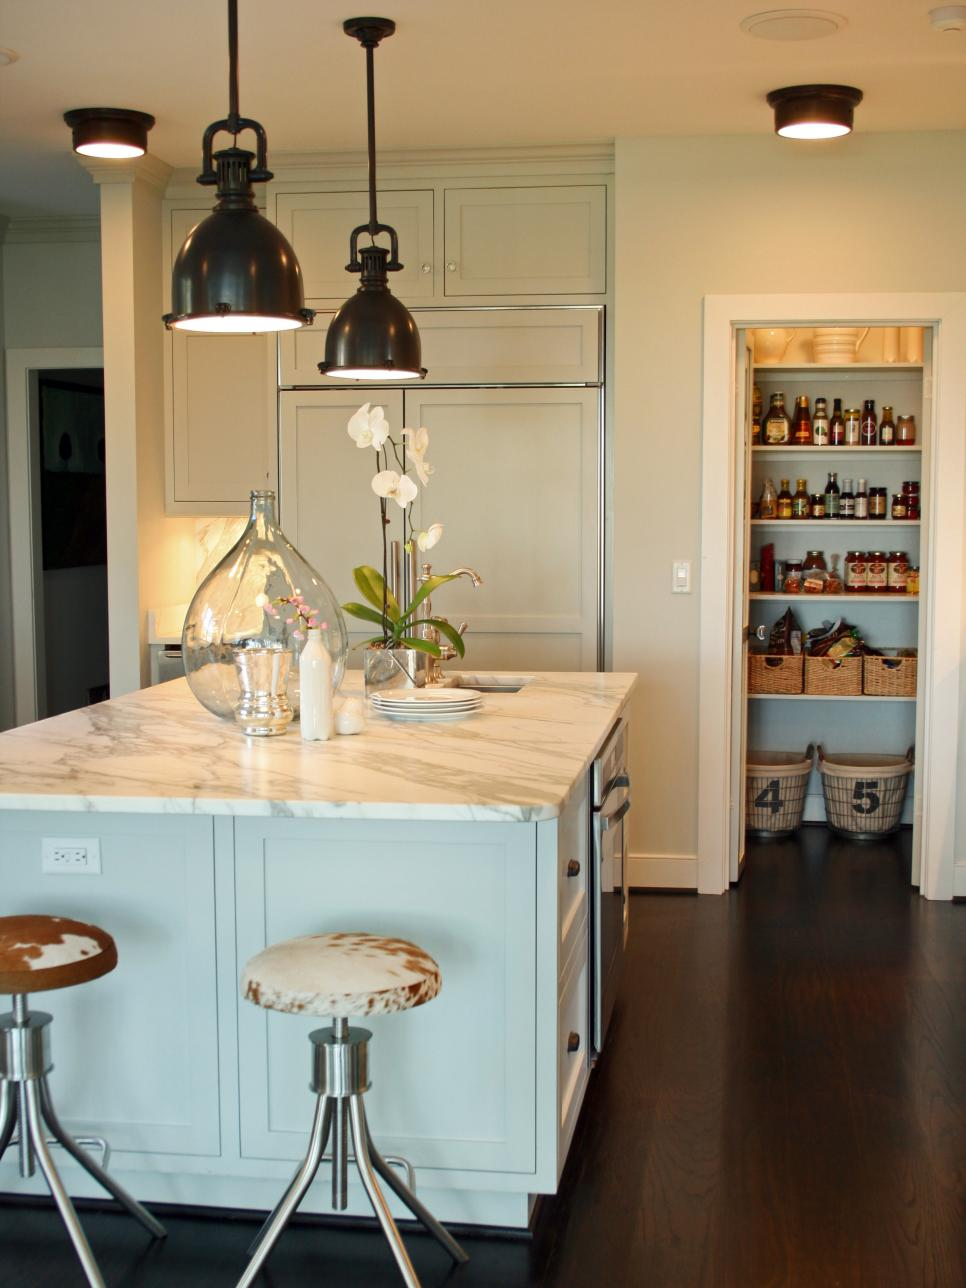 Lighting Idea For Kitchen New Kitchen Lighting Design Tips  Hgtv Inspiration Design